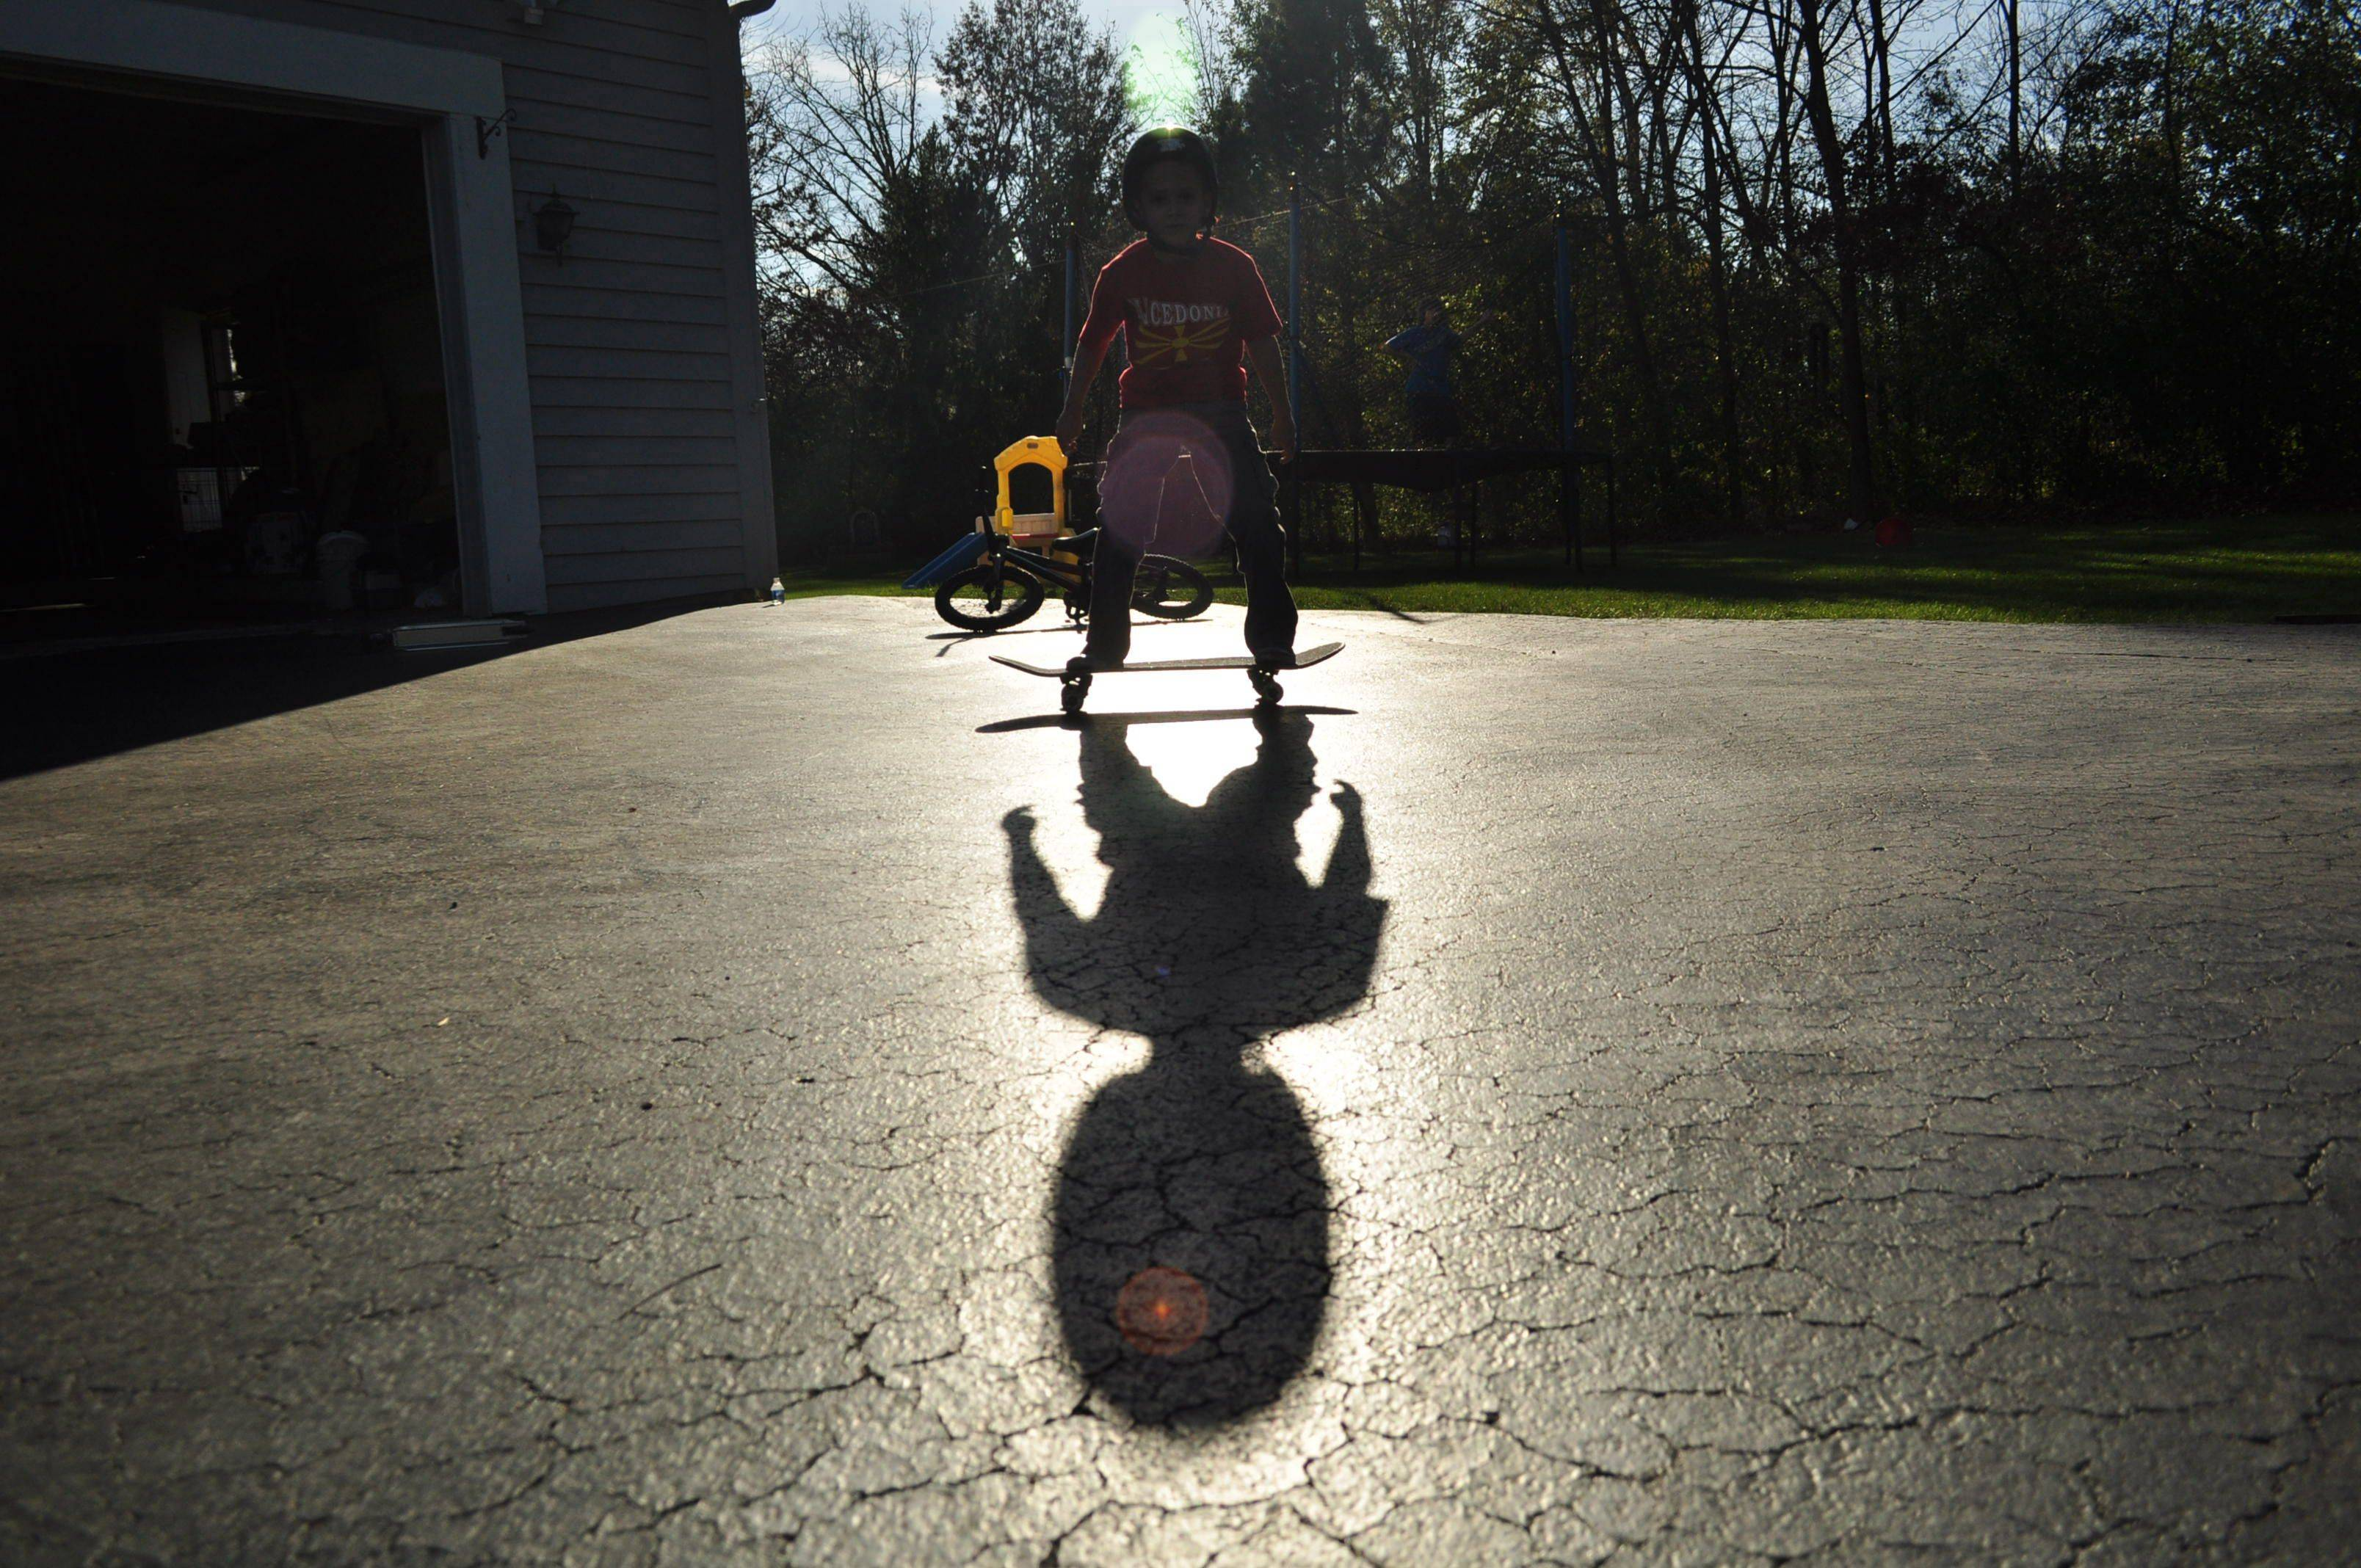 A Mundelein boy tries new tricks in the driveway on his skateboard.